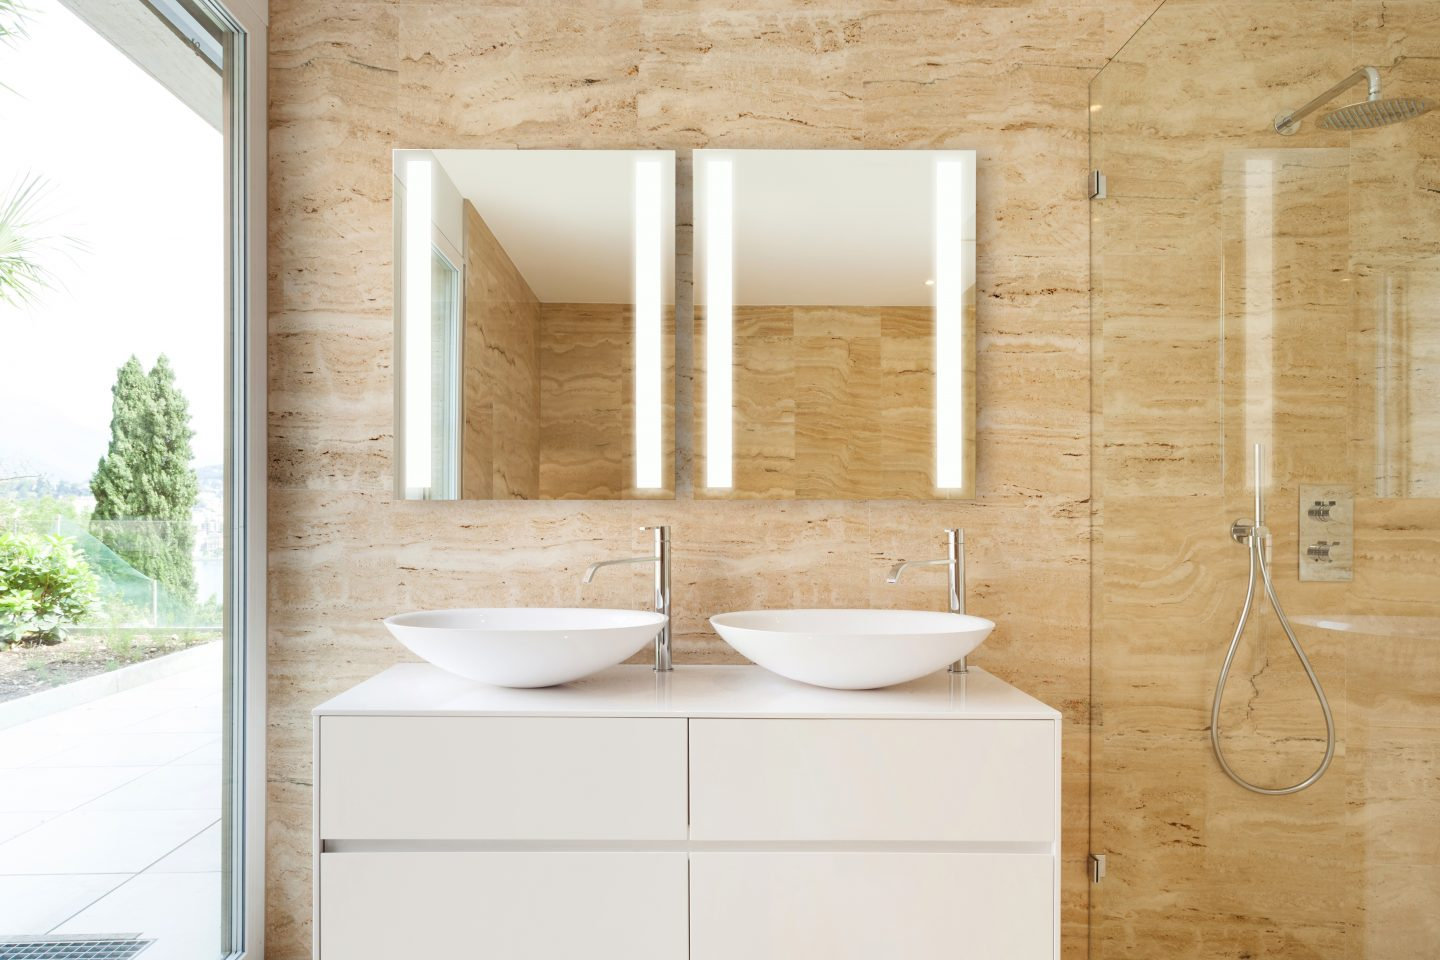 SIDLER® International Ltd. - SIDLER® SIDELIGHT - Bathroom Mirror Cabinets, Medicine Cabinets - Vancouver BC, Canada